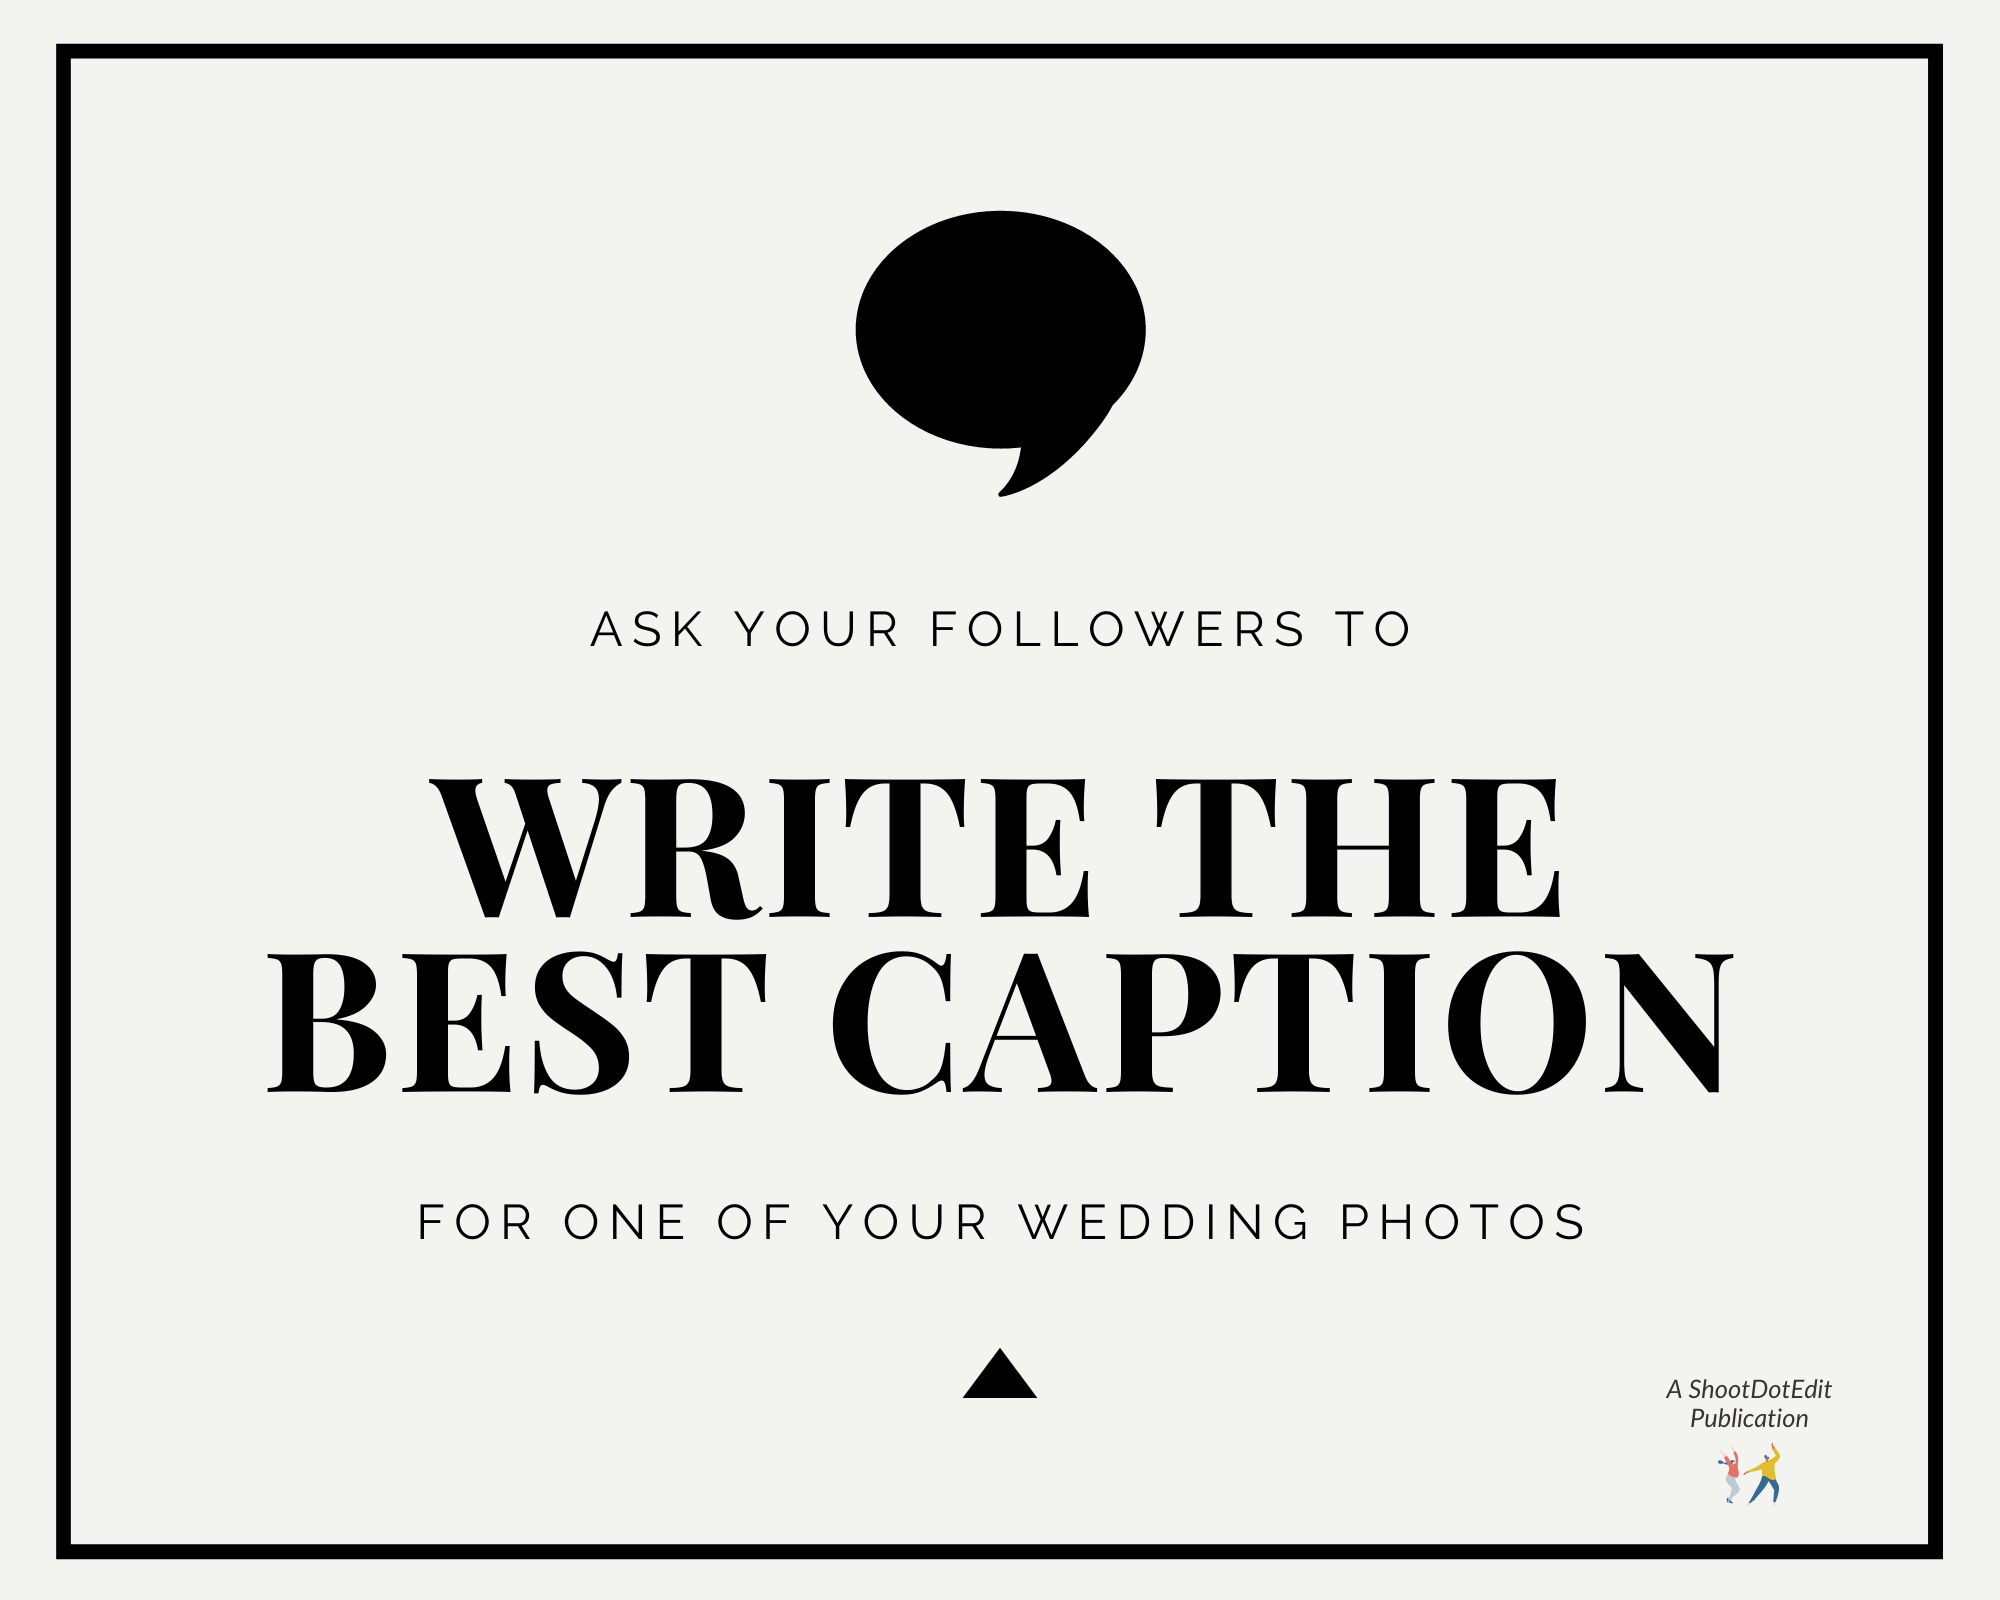 Infographic stating ask your followers to write the best caption for one of your wedding photos